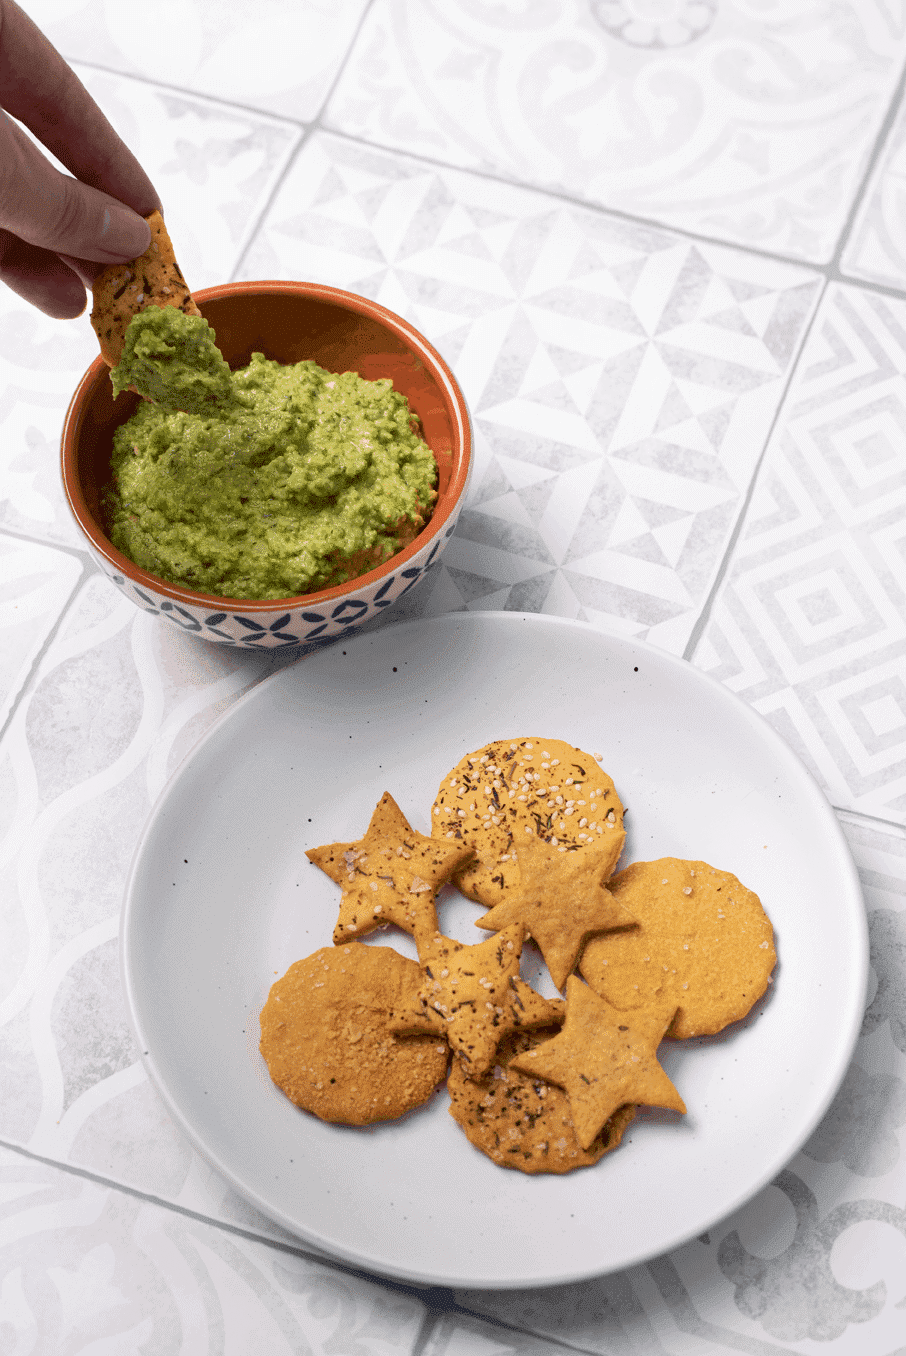 Chickpea Crackers with a Pea Houmous Dip 1